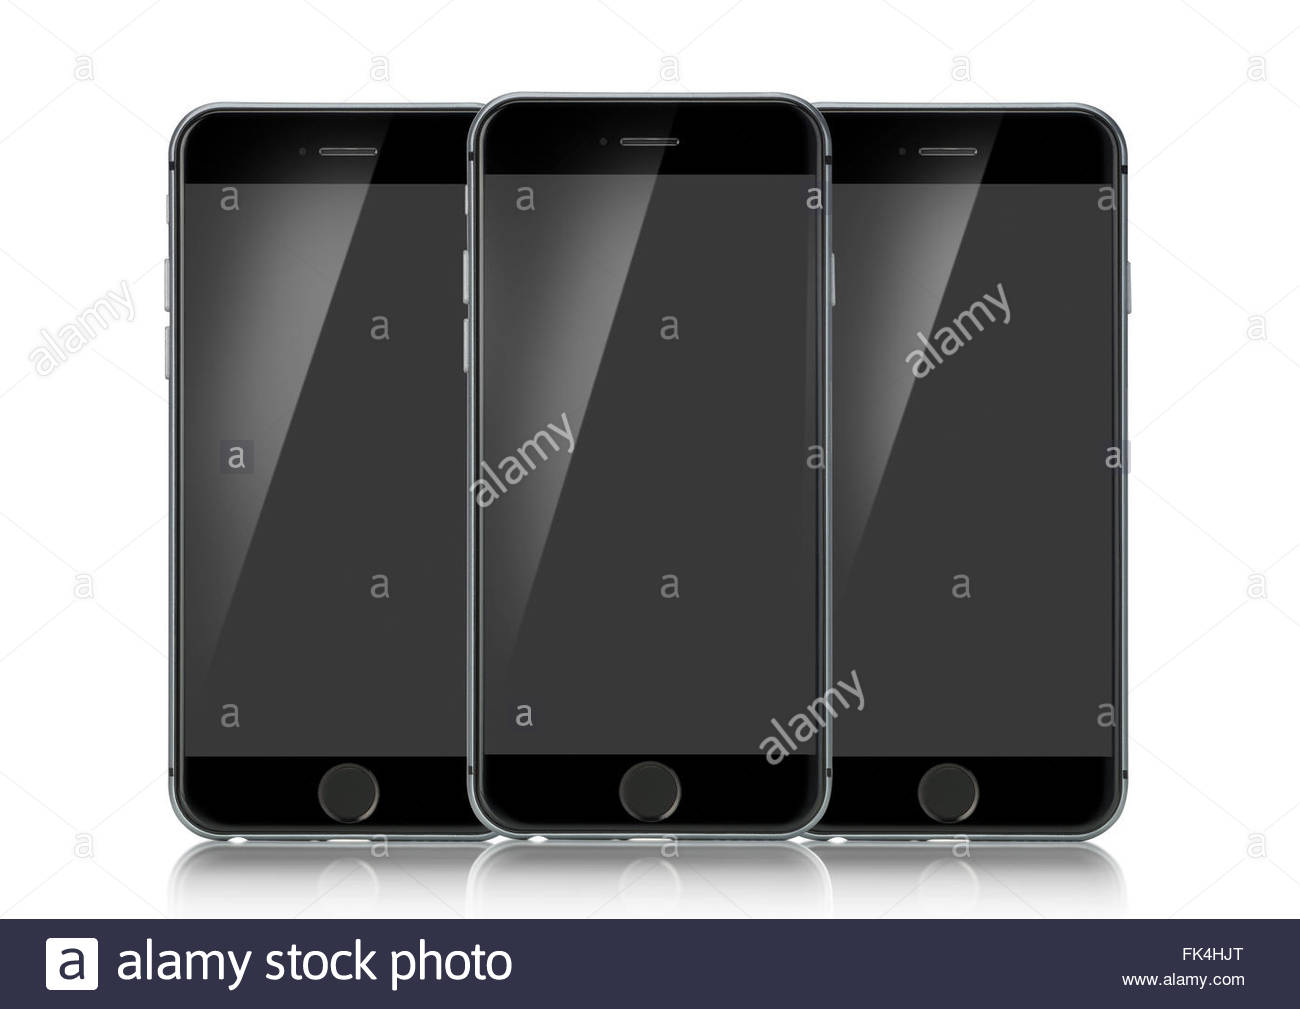 Three Apple IPhone 6s isolated on a white background forward facing with a blank screen - Stock Image